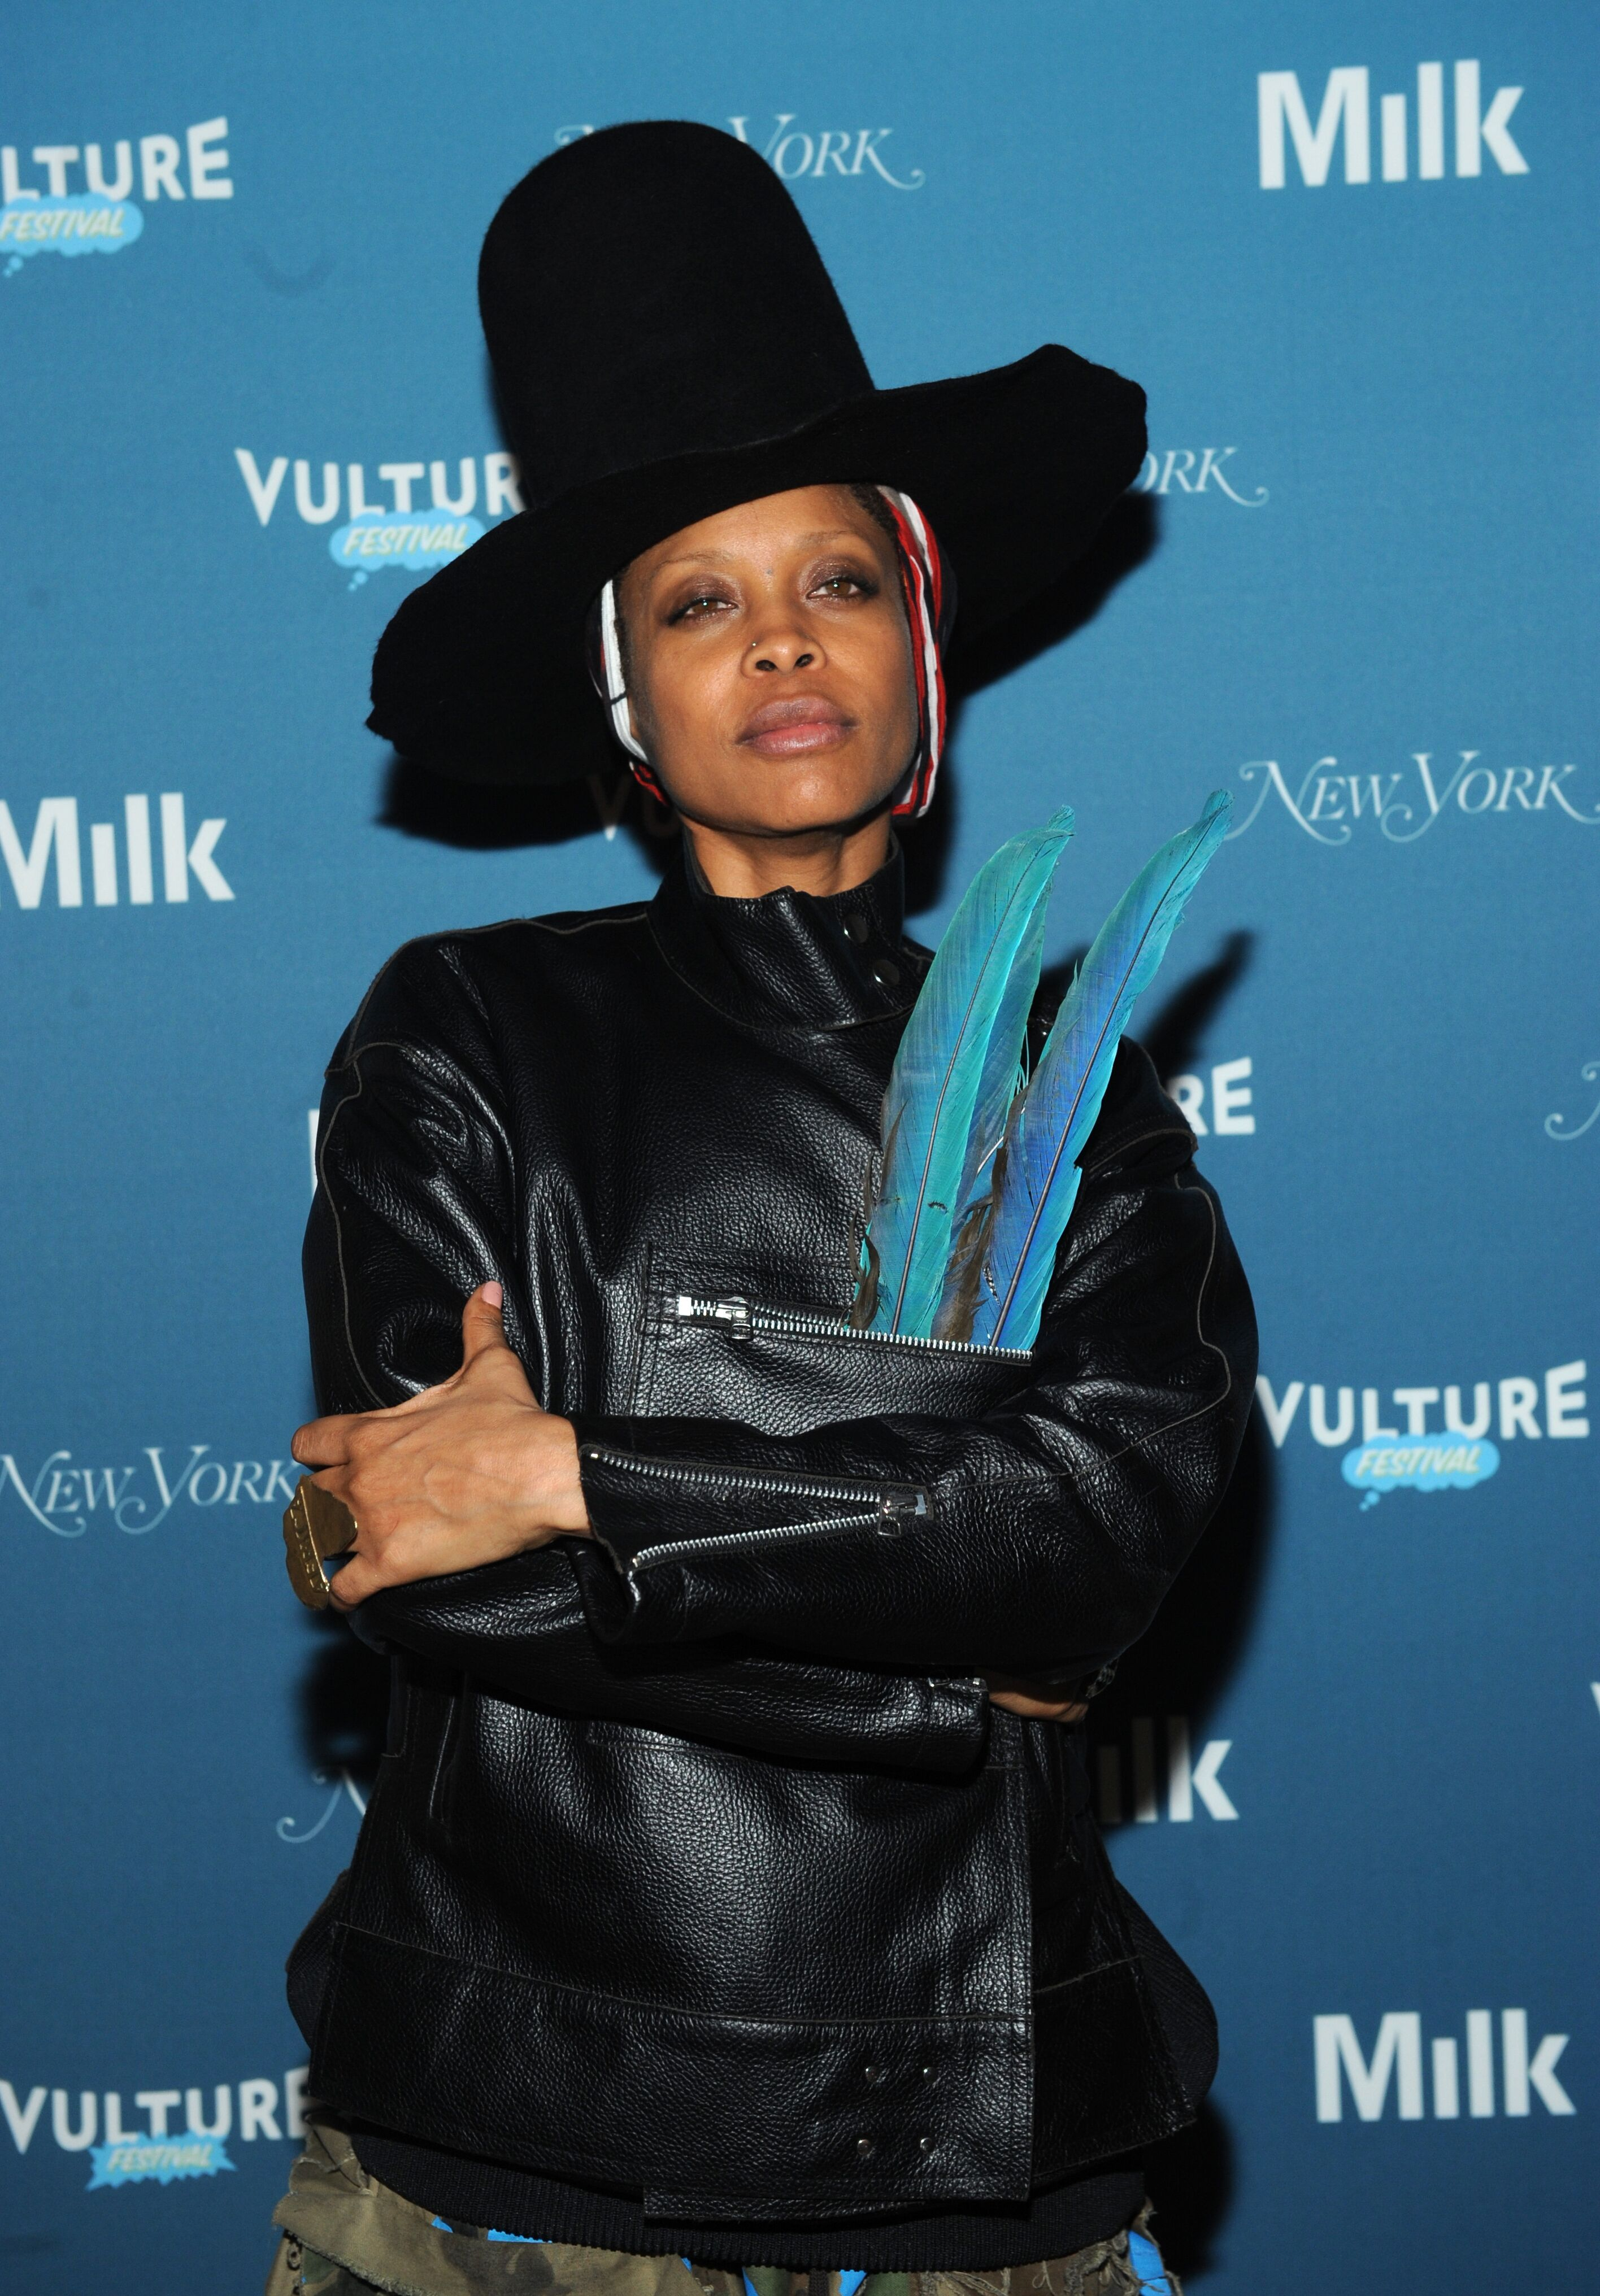 Singer-songwriter Erykah Badu at the Vulture Festival Opening Night Party at Neuehouse | Photo: Getty Images/GlobalImagesUkraine